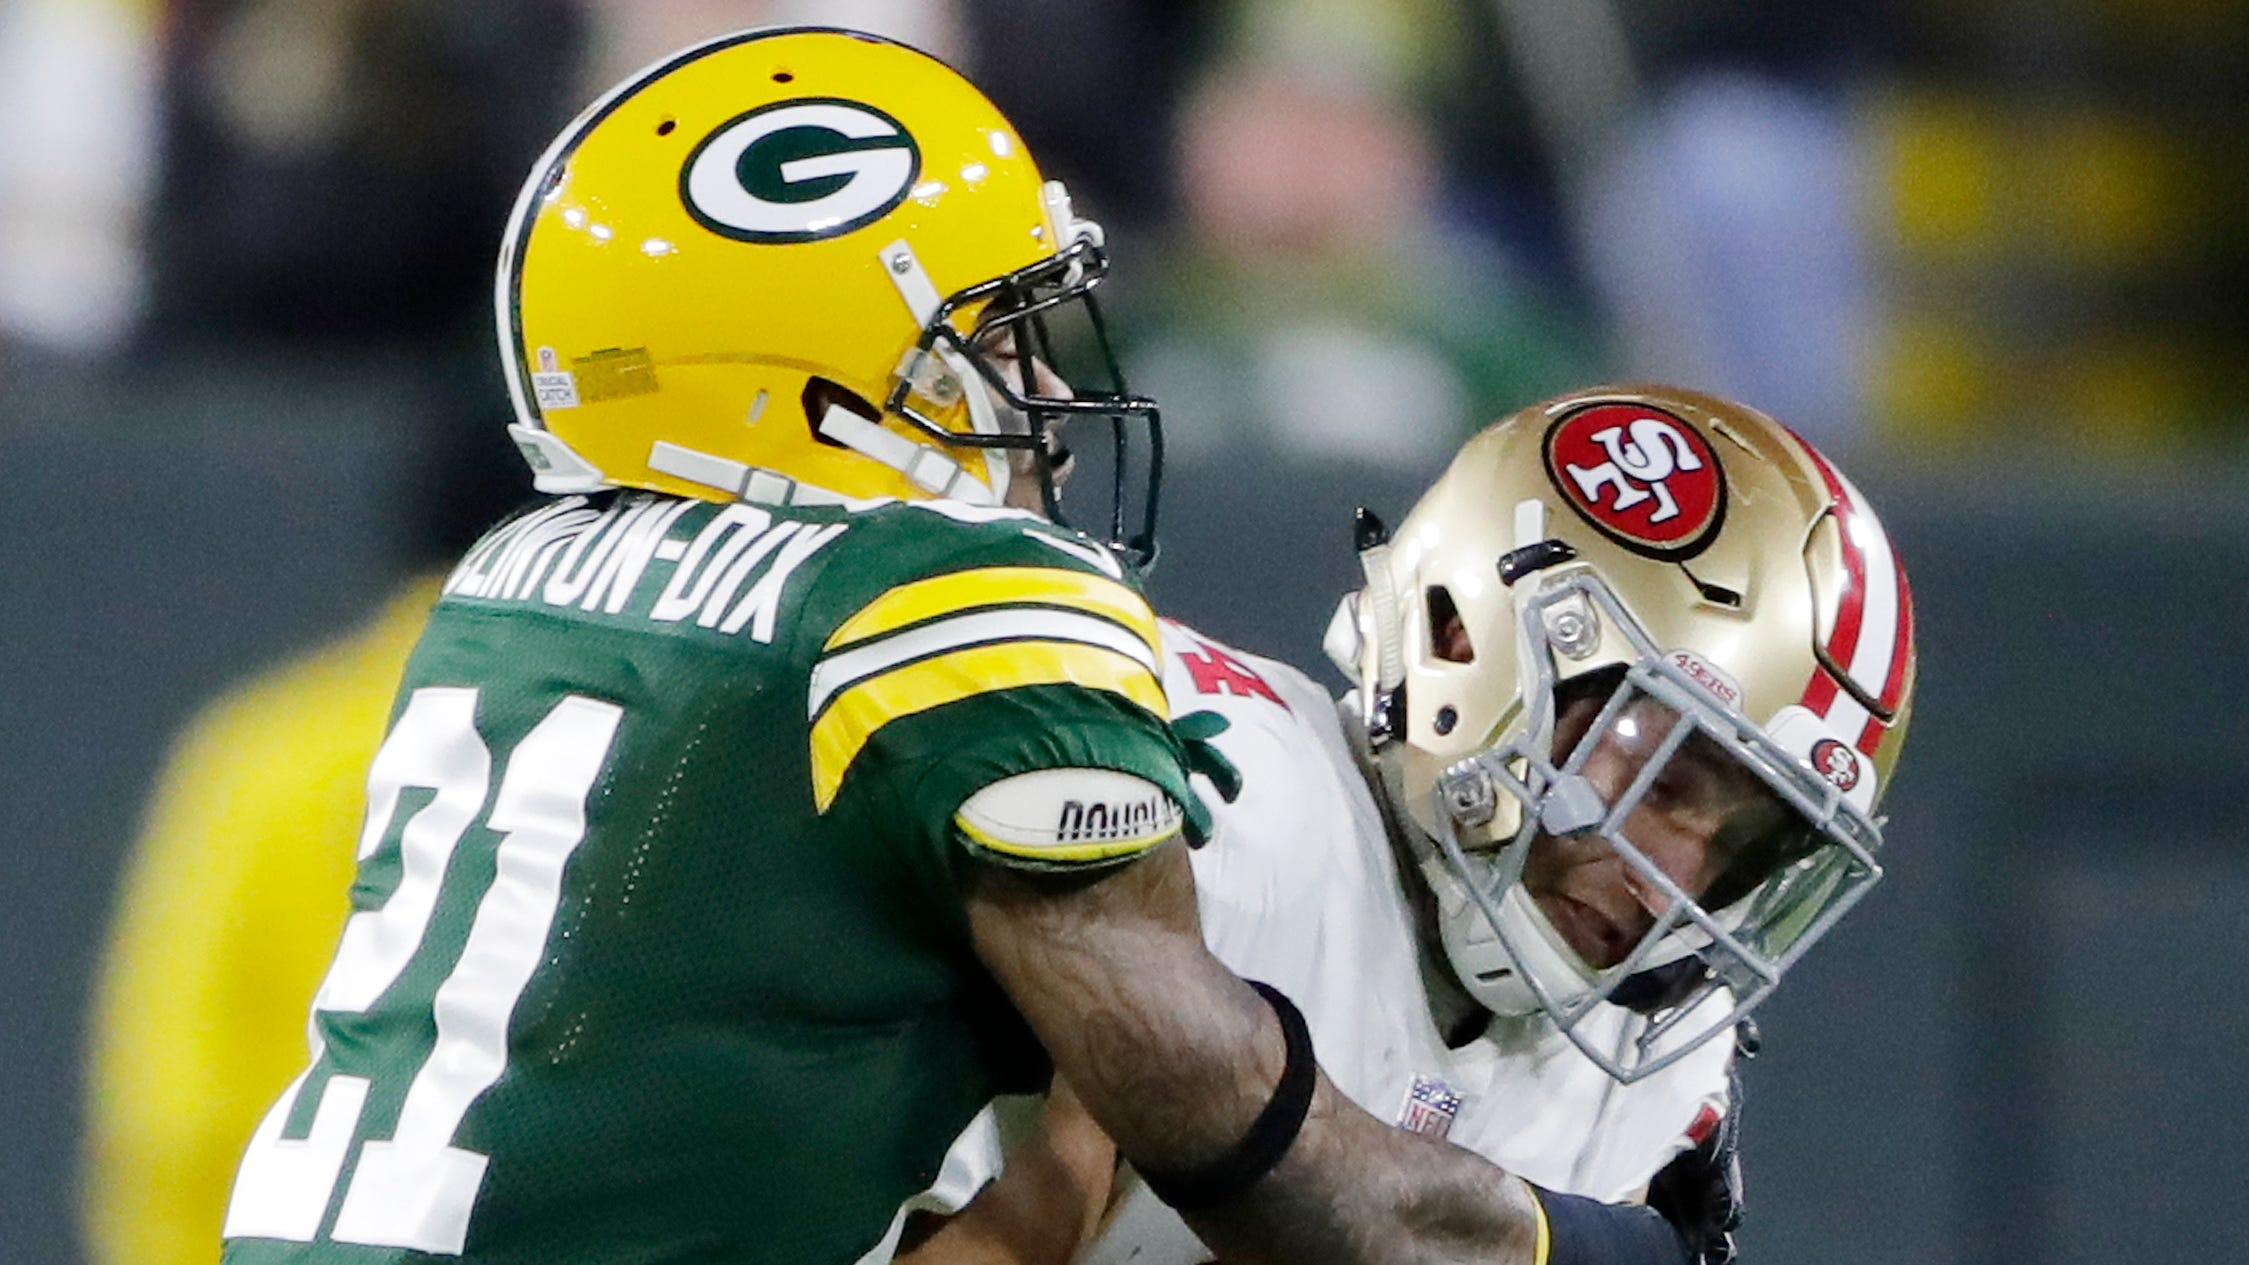 6417a455-e596-4553-8c15-9c82a7f287ab-gpg_packers49ers_101518_abw1164